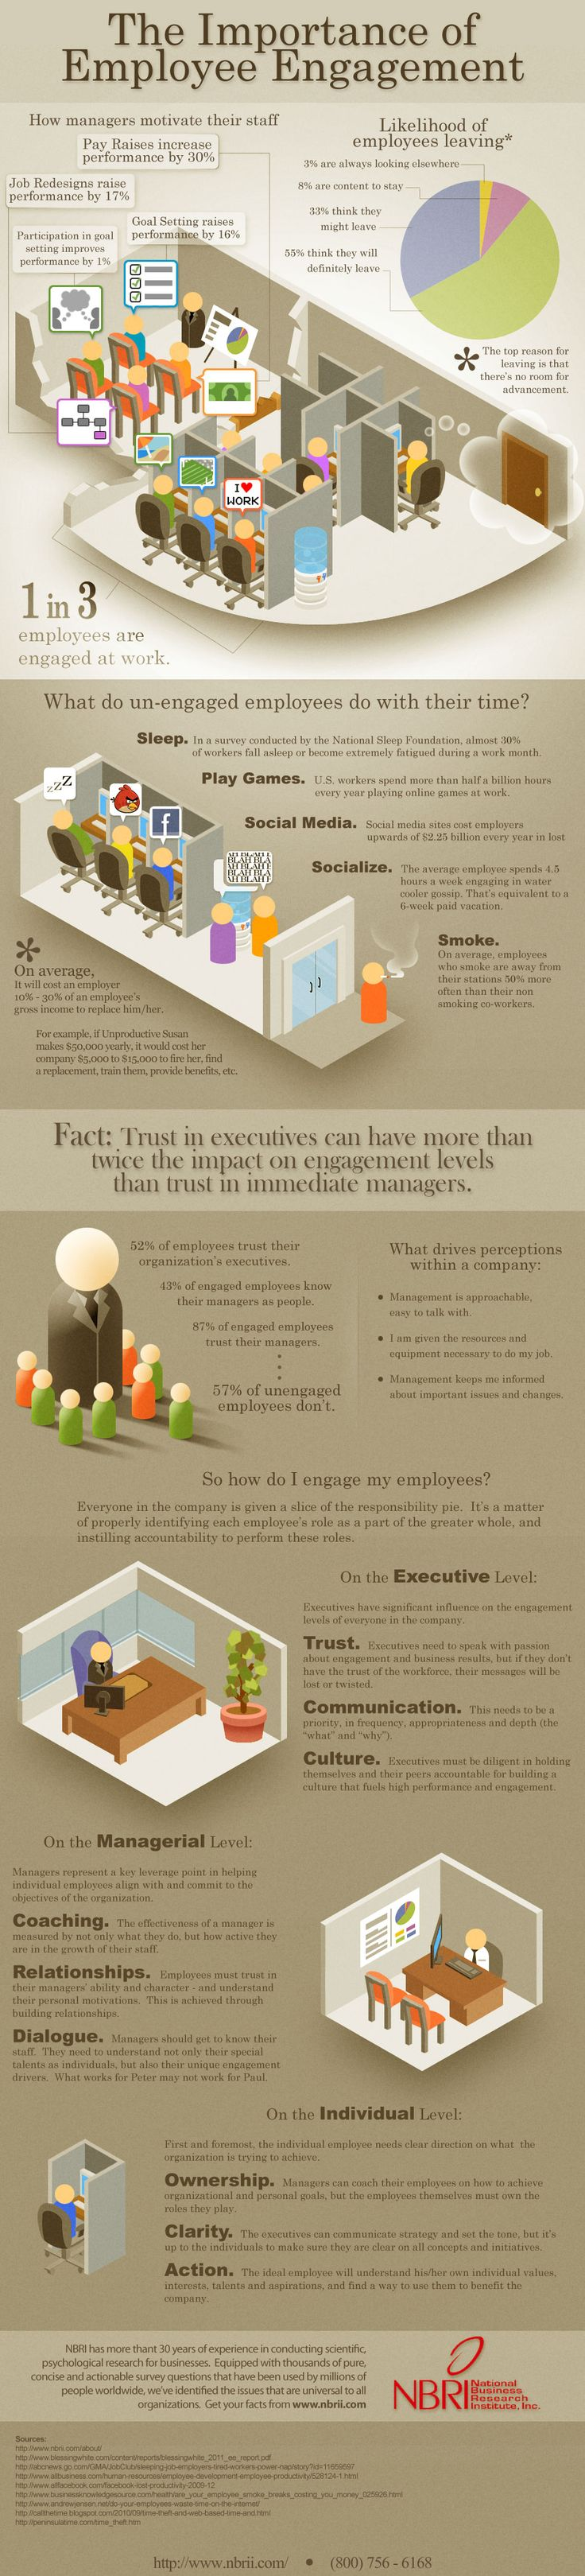 Constructive Work Space | The Importance of Employee Engagement                                                                                                                                                      More  - Hope you like the repin ; )